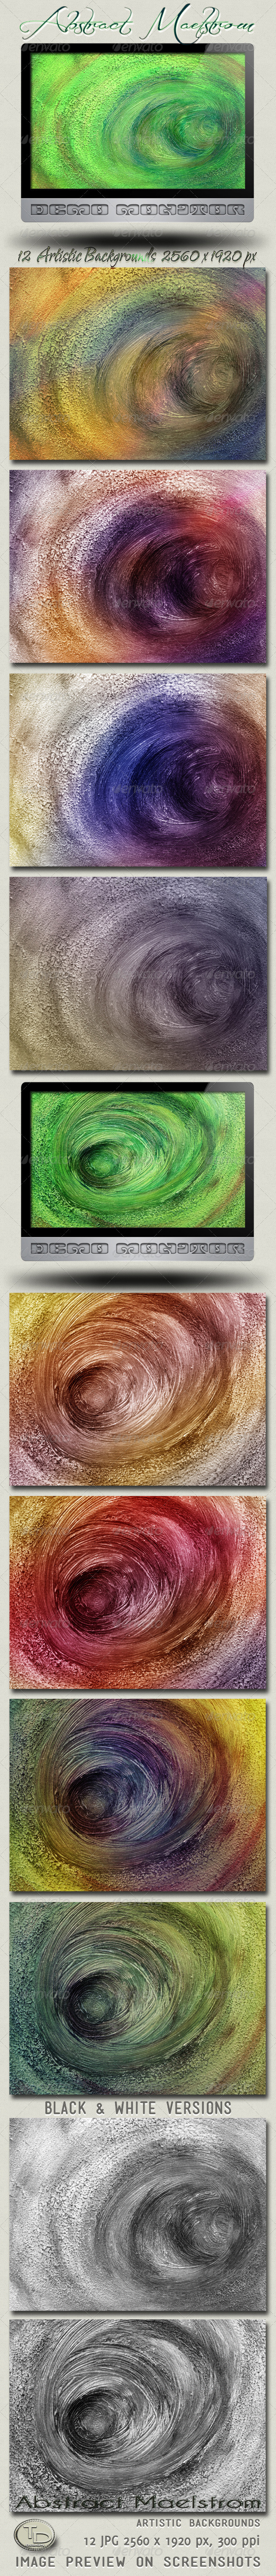 Abstract Maelstrom Artistic Backgrounds